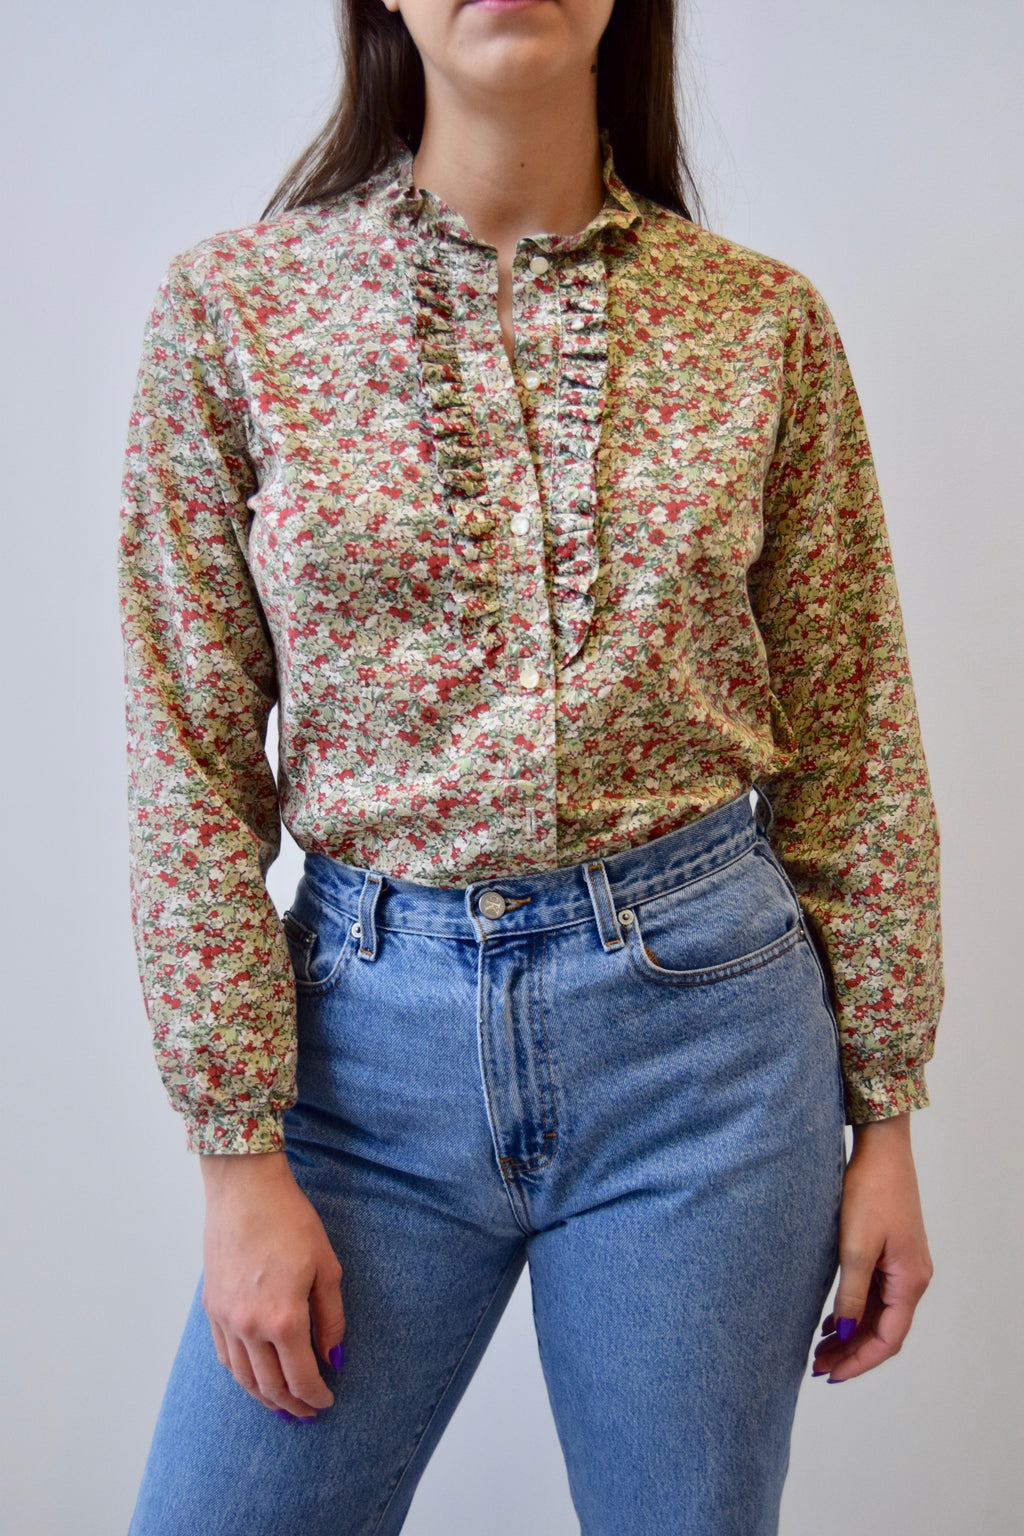 Earth Tone Floral Ruffle Bib Blouse FREE SHIPPING TO THE U.S.